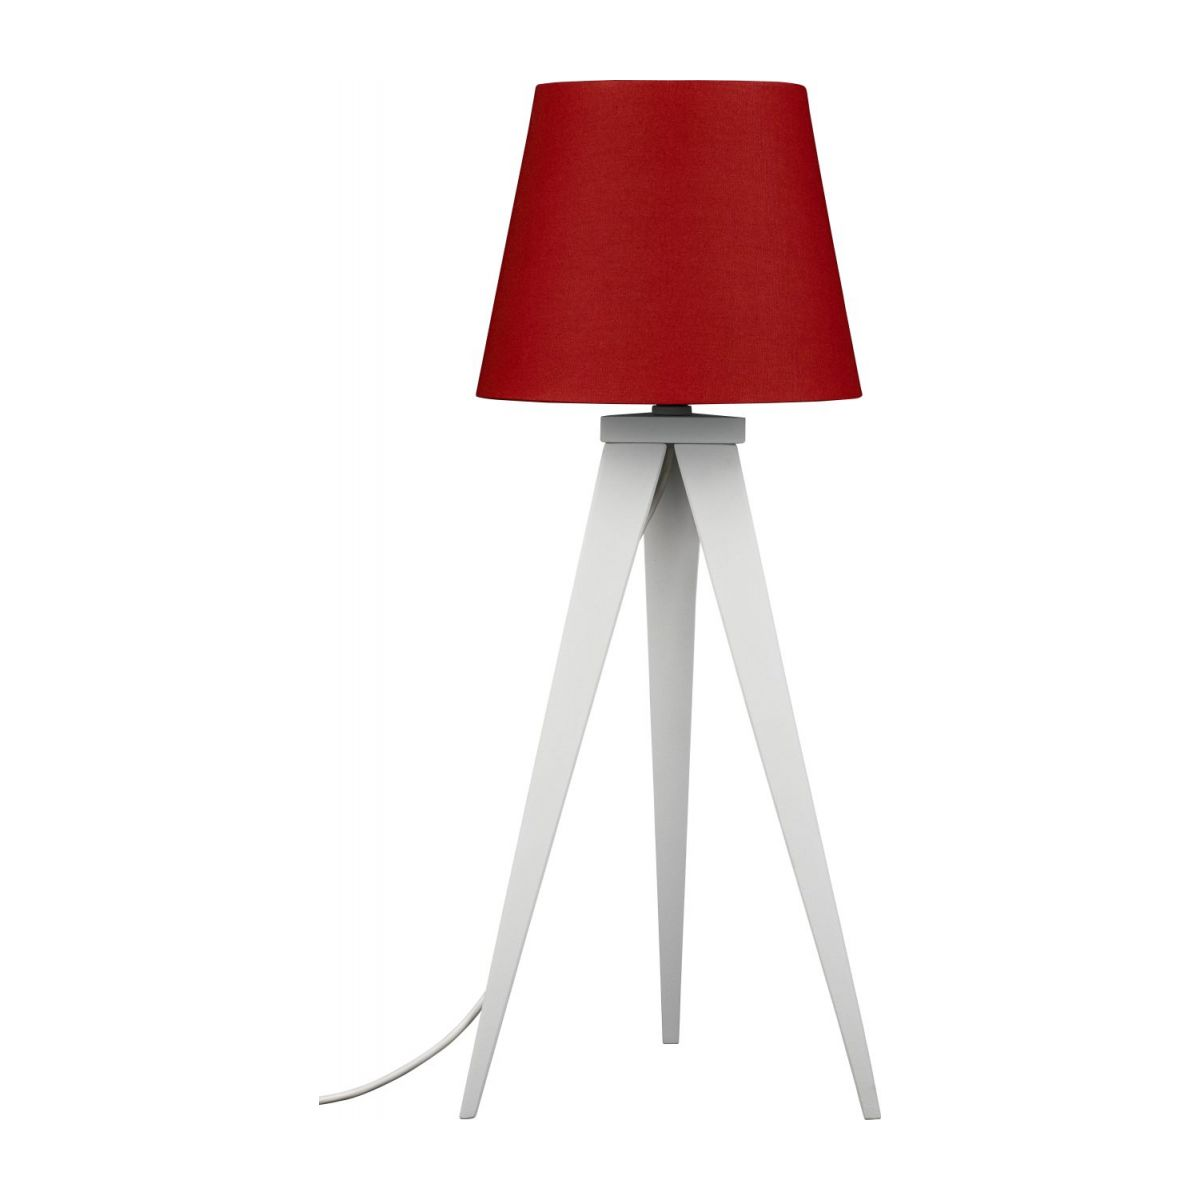 Red lampshade n°3